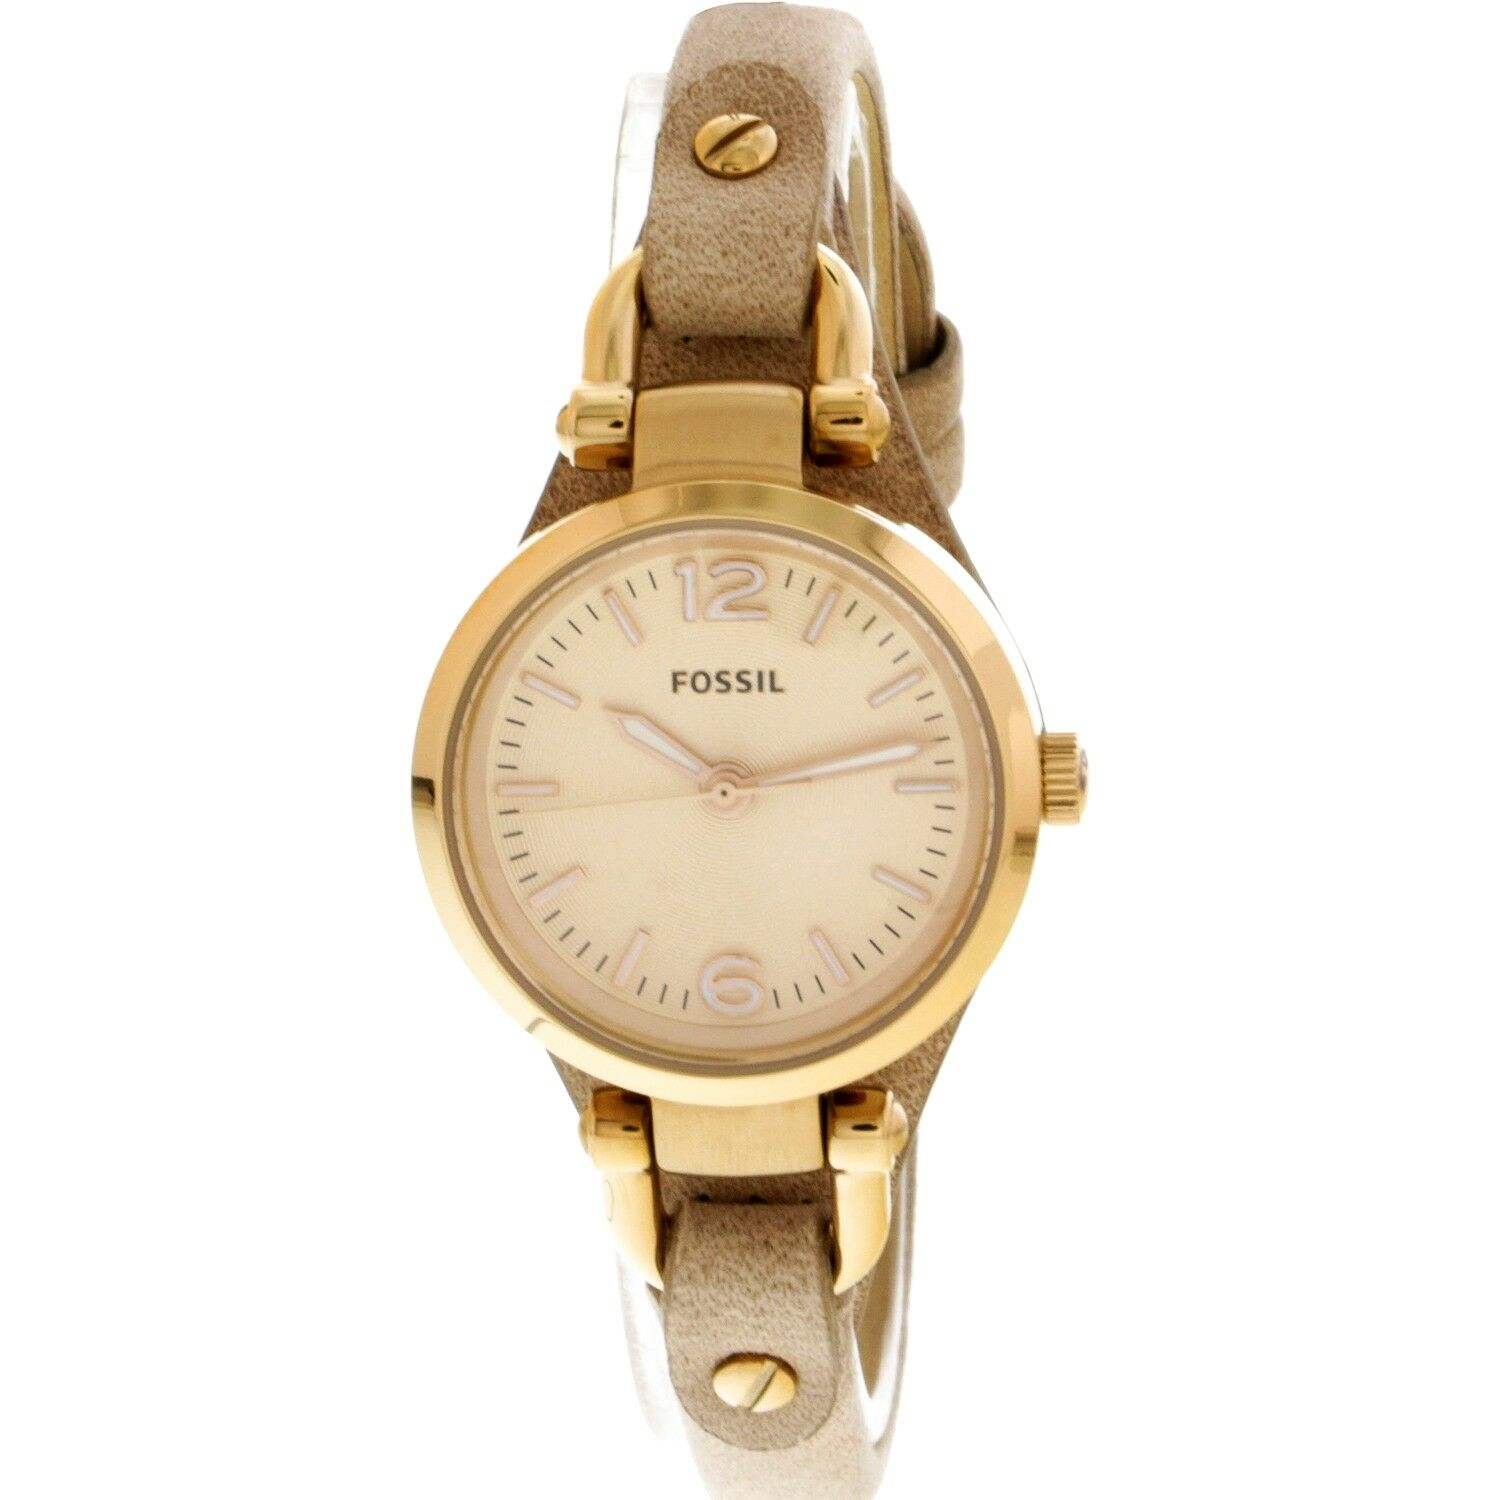 shop sand editor rose upscale secret subsampling piaget jewellery crop gold cuff and product scale watch watches false waves the